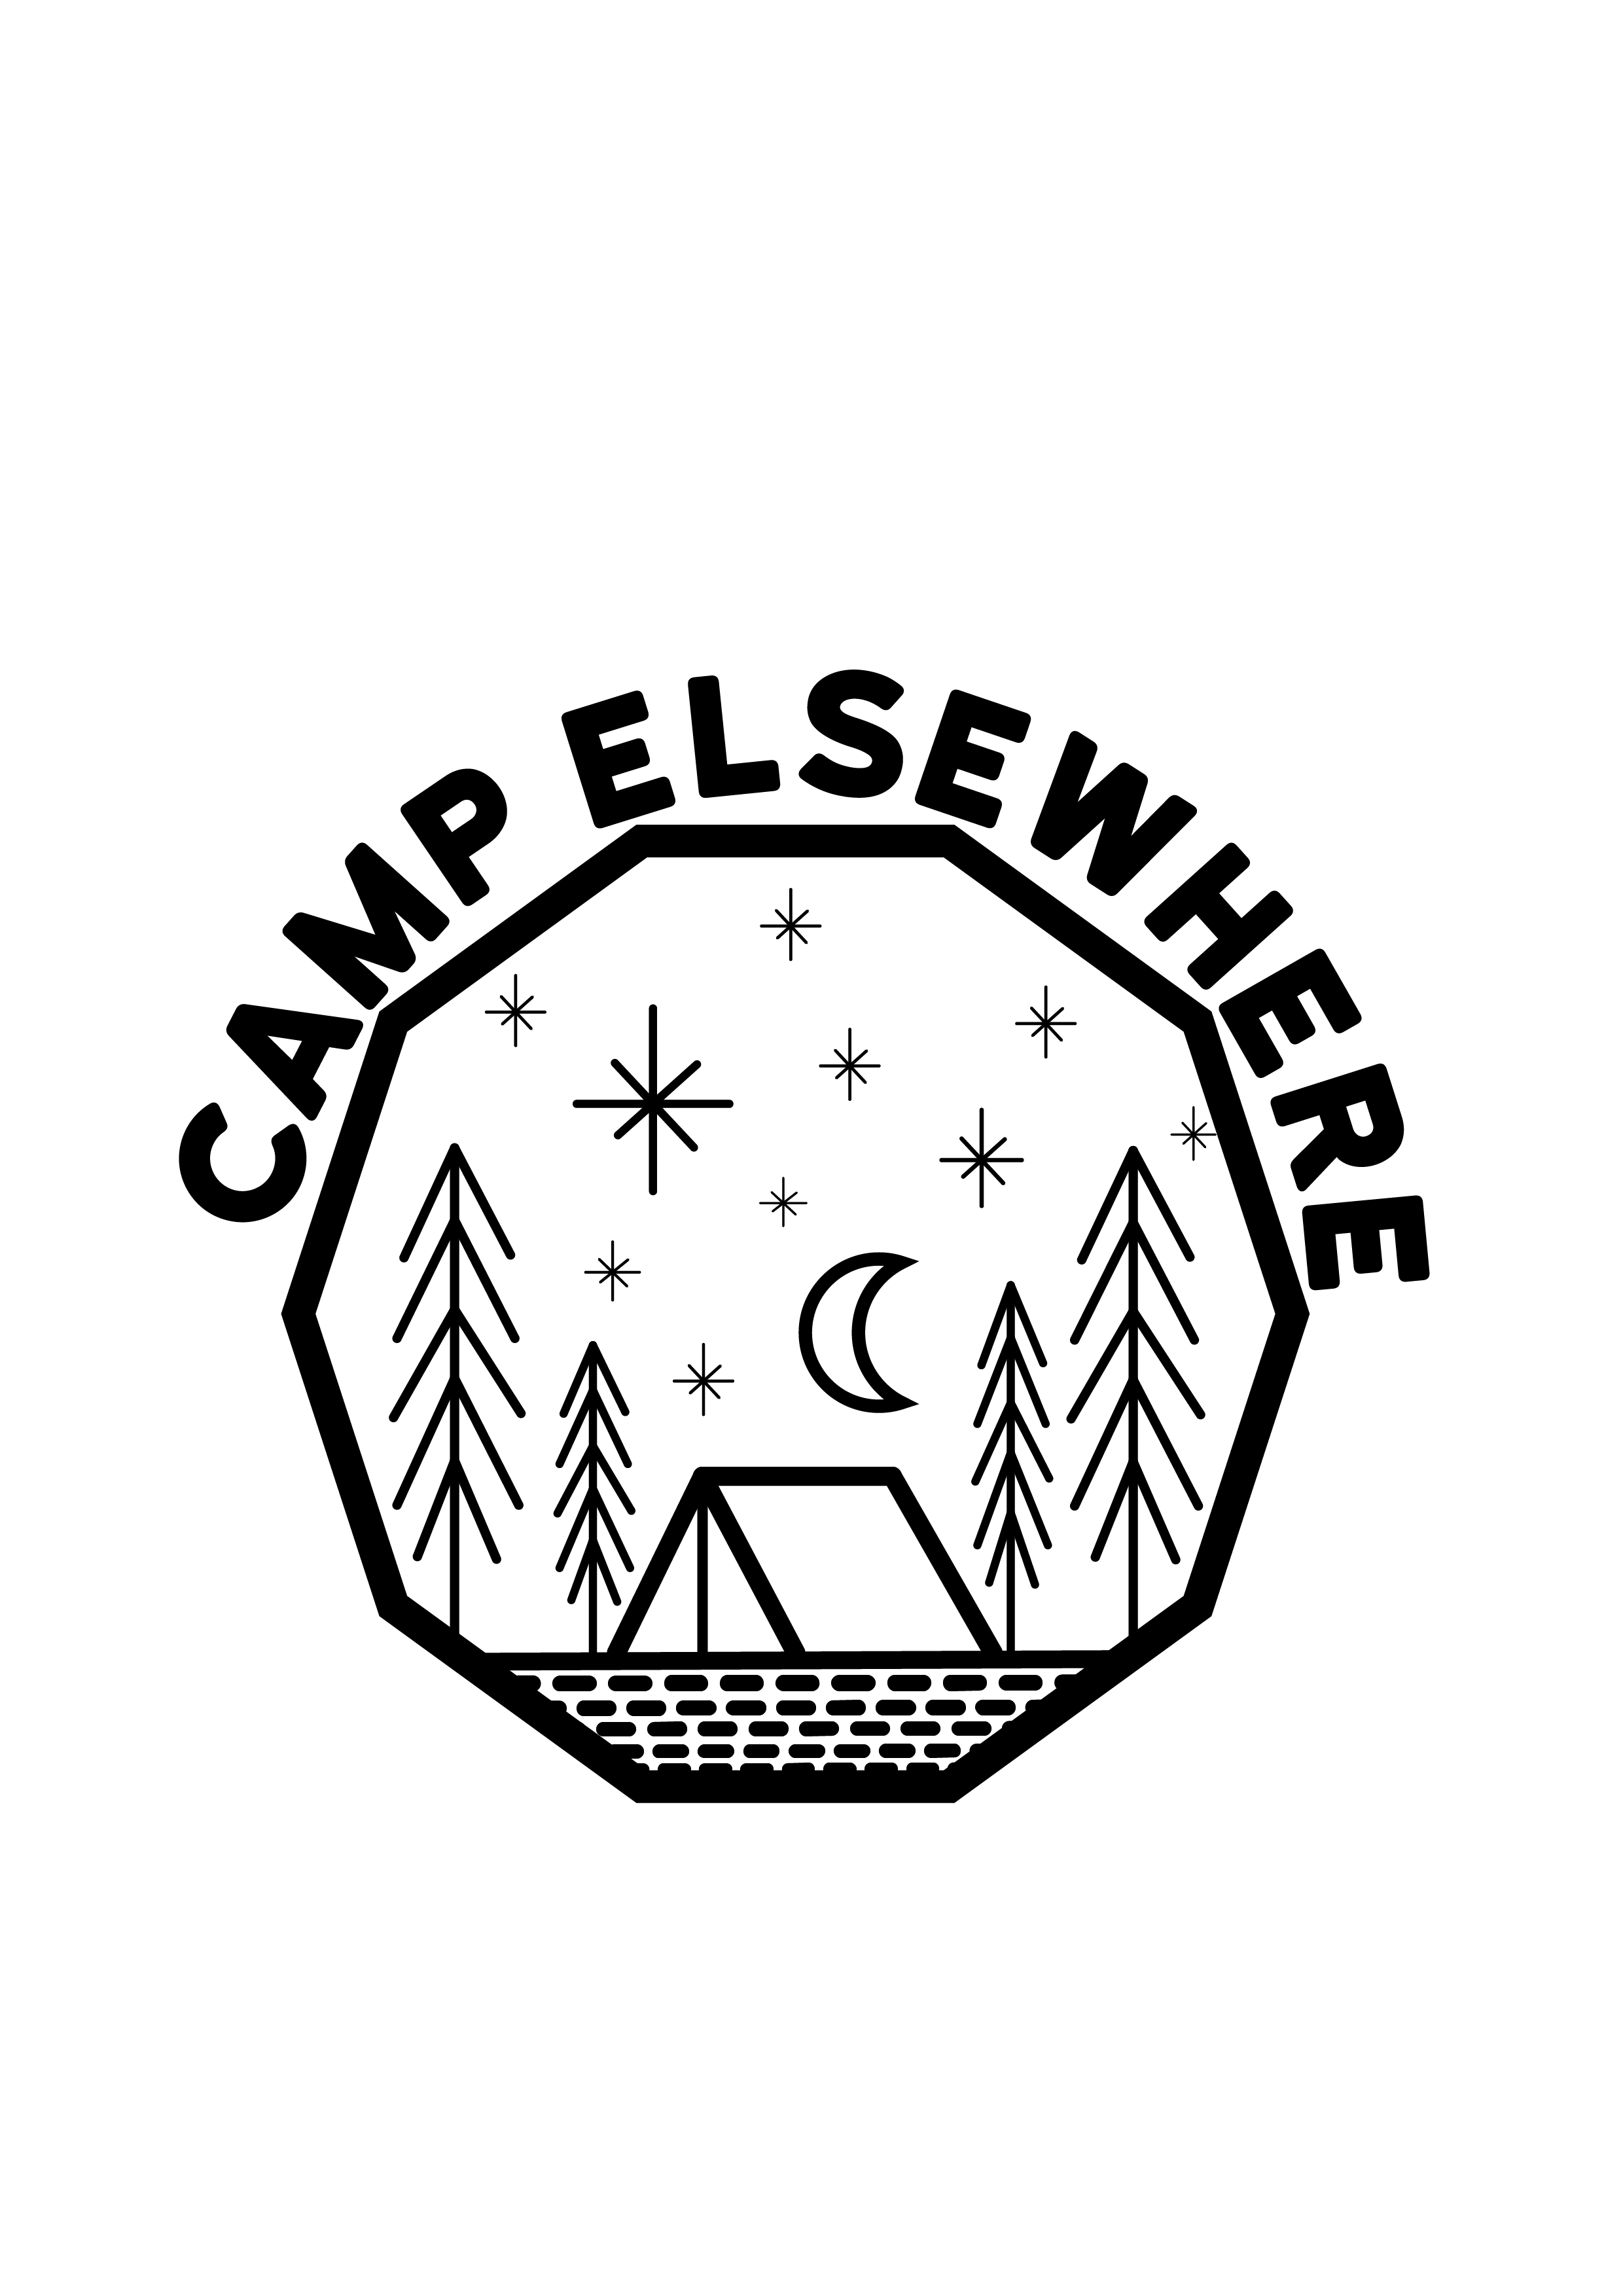 CAMP-ELSEWHERE-01.png